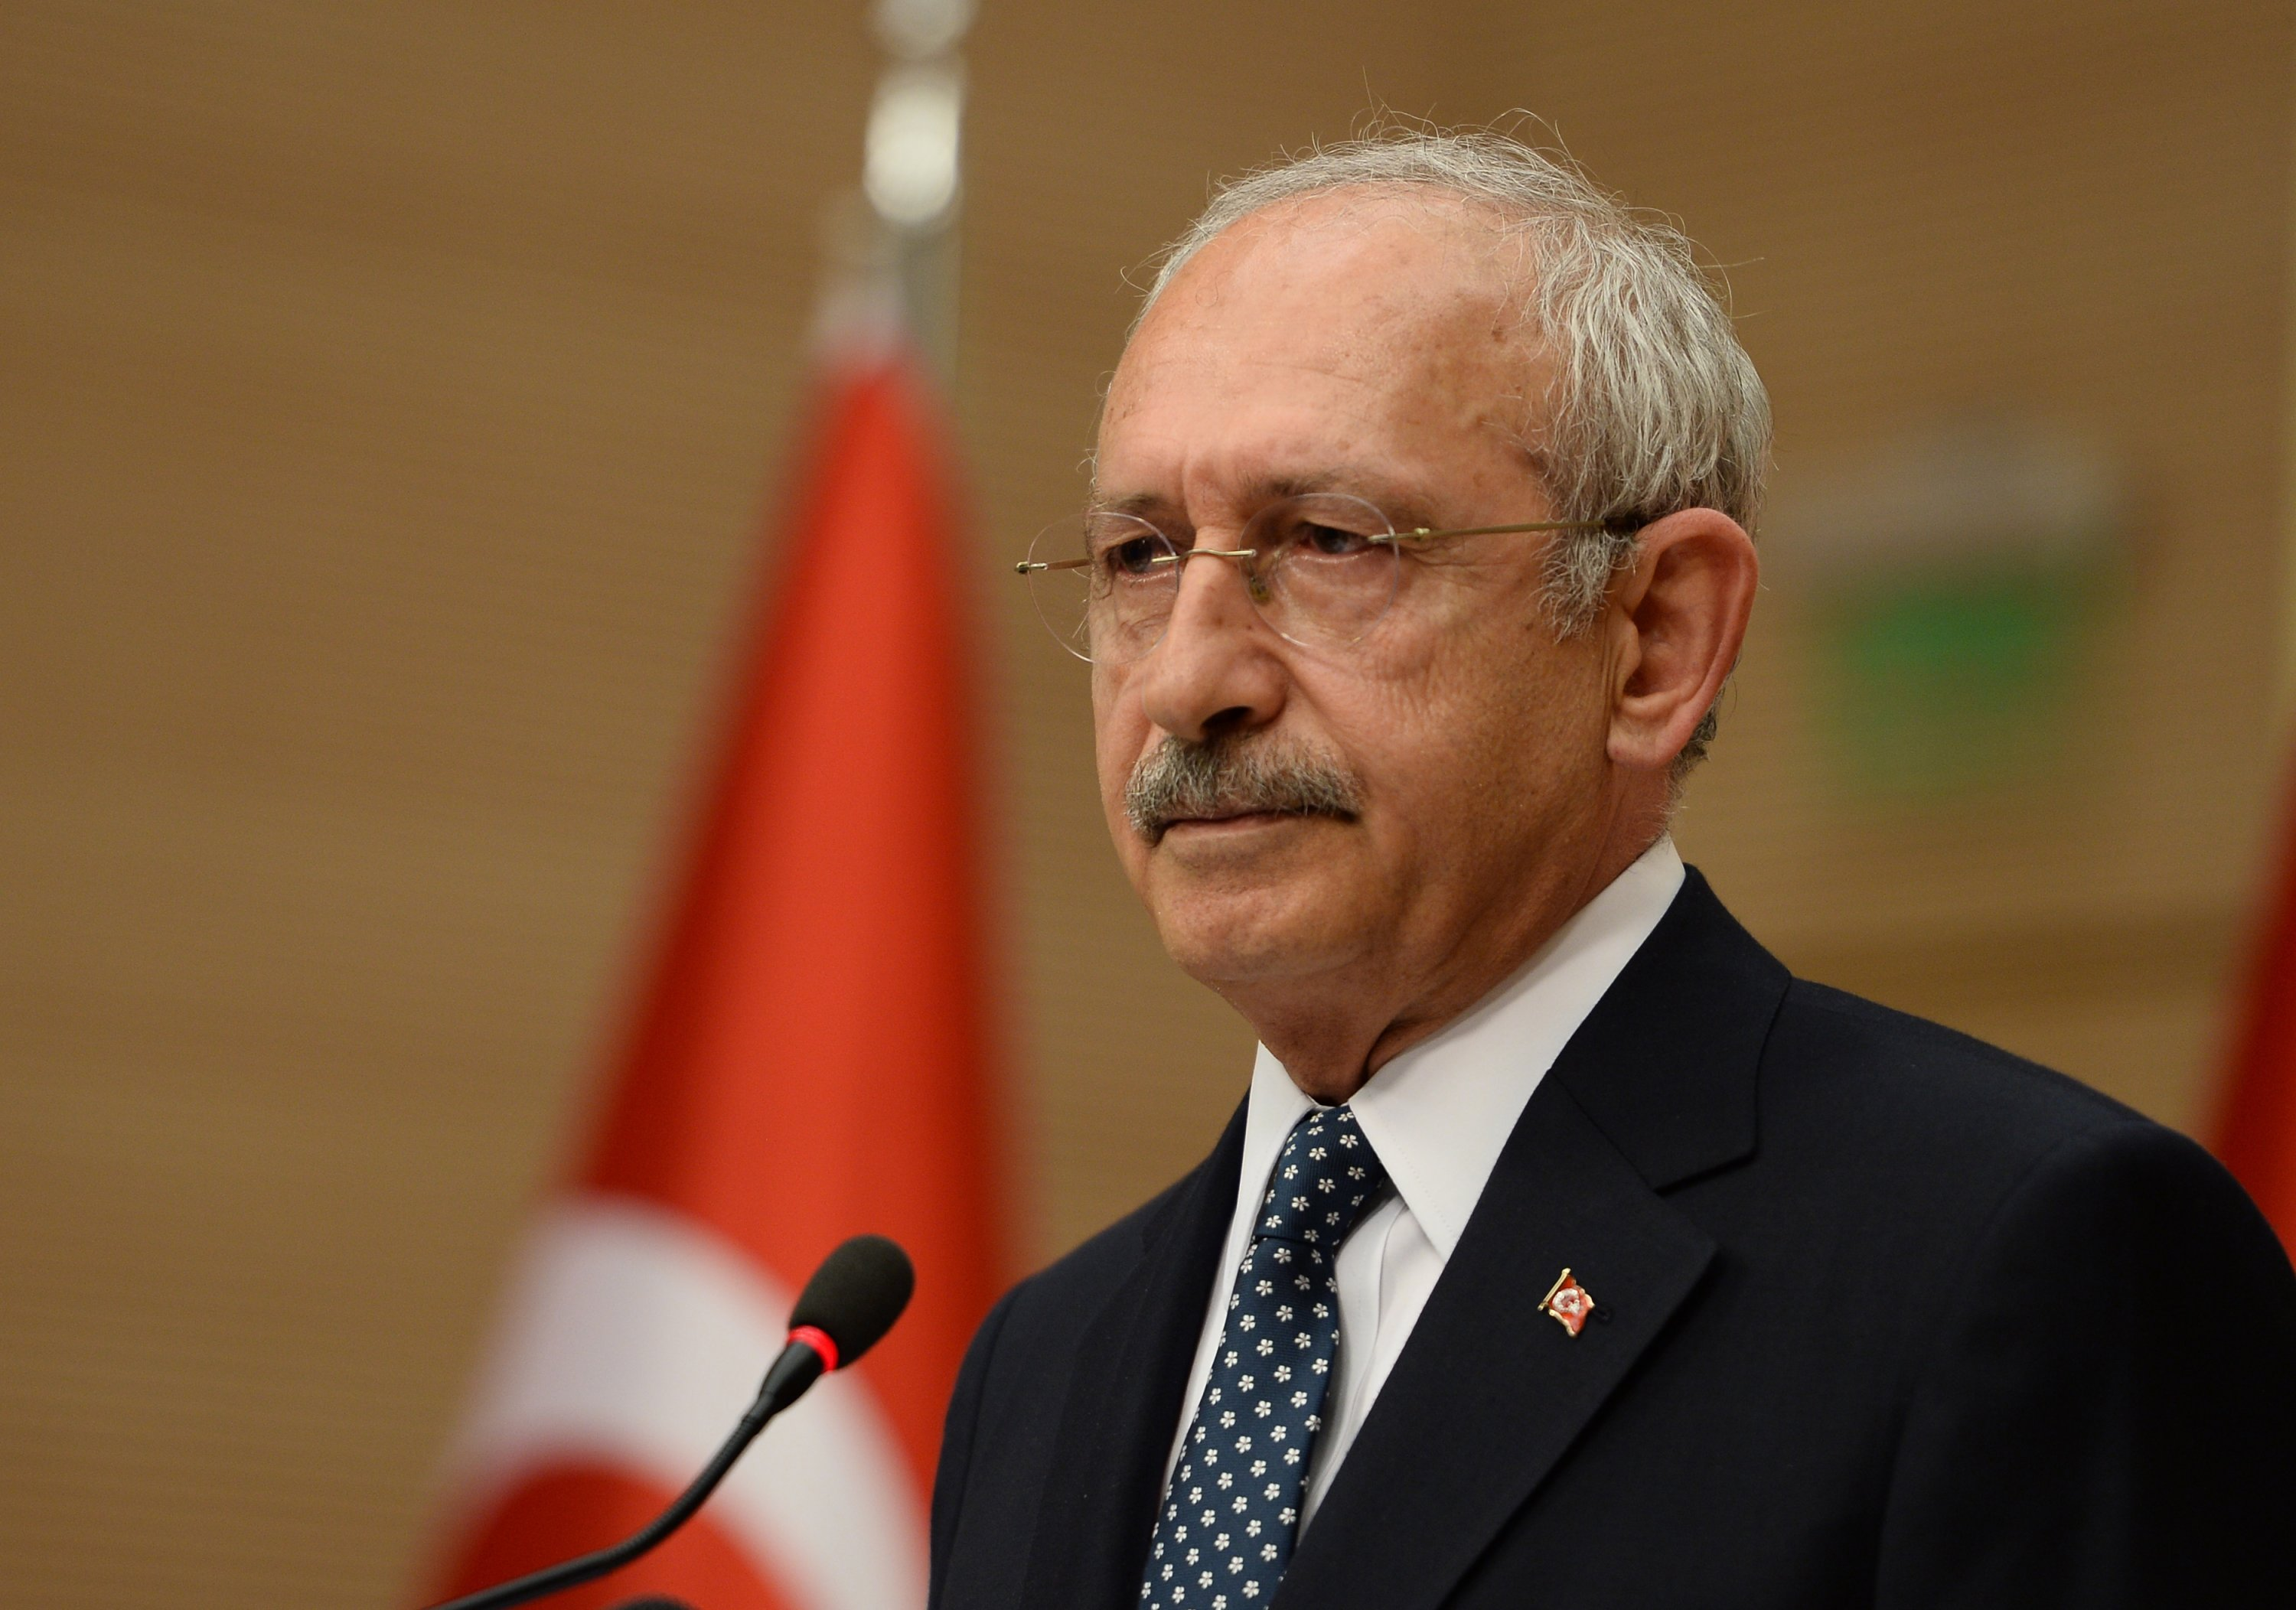 Turkey's main opposition Republican People's Party (CHP) Chairperson Kemal Kılıçdaroğlu speaks during a news conference in Ankara, Turkey, April 16, 2017. (Getty Images Photo)